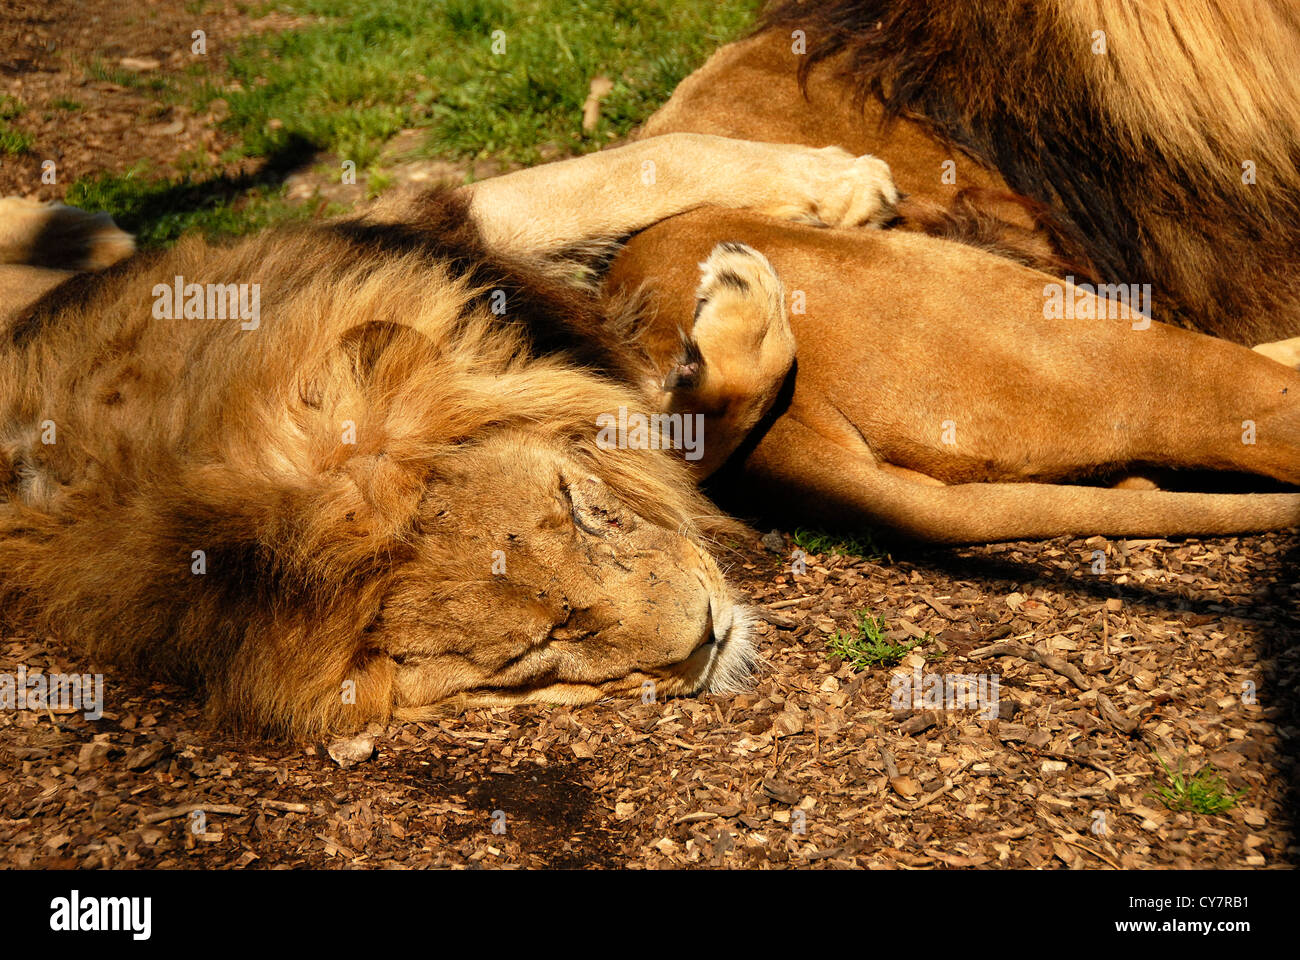 African Lions - Stock Image